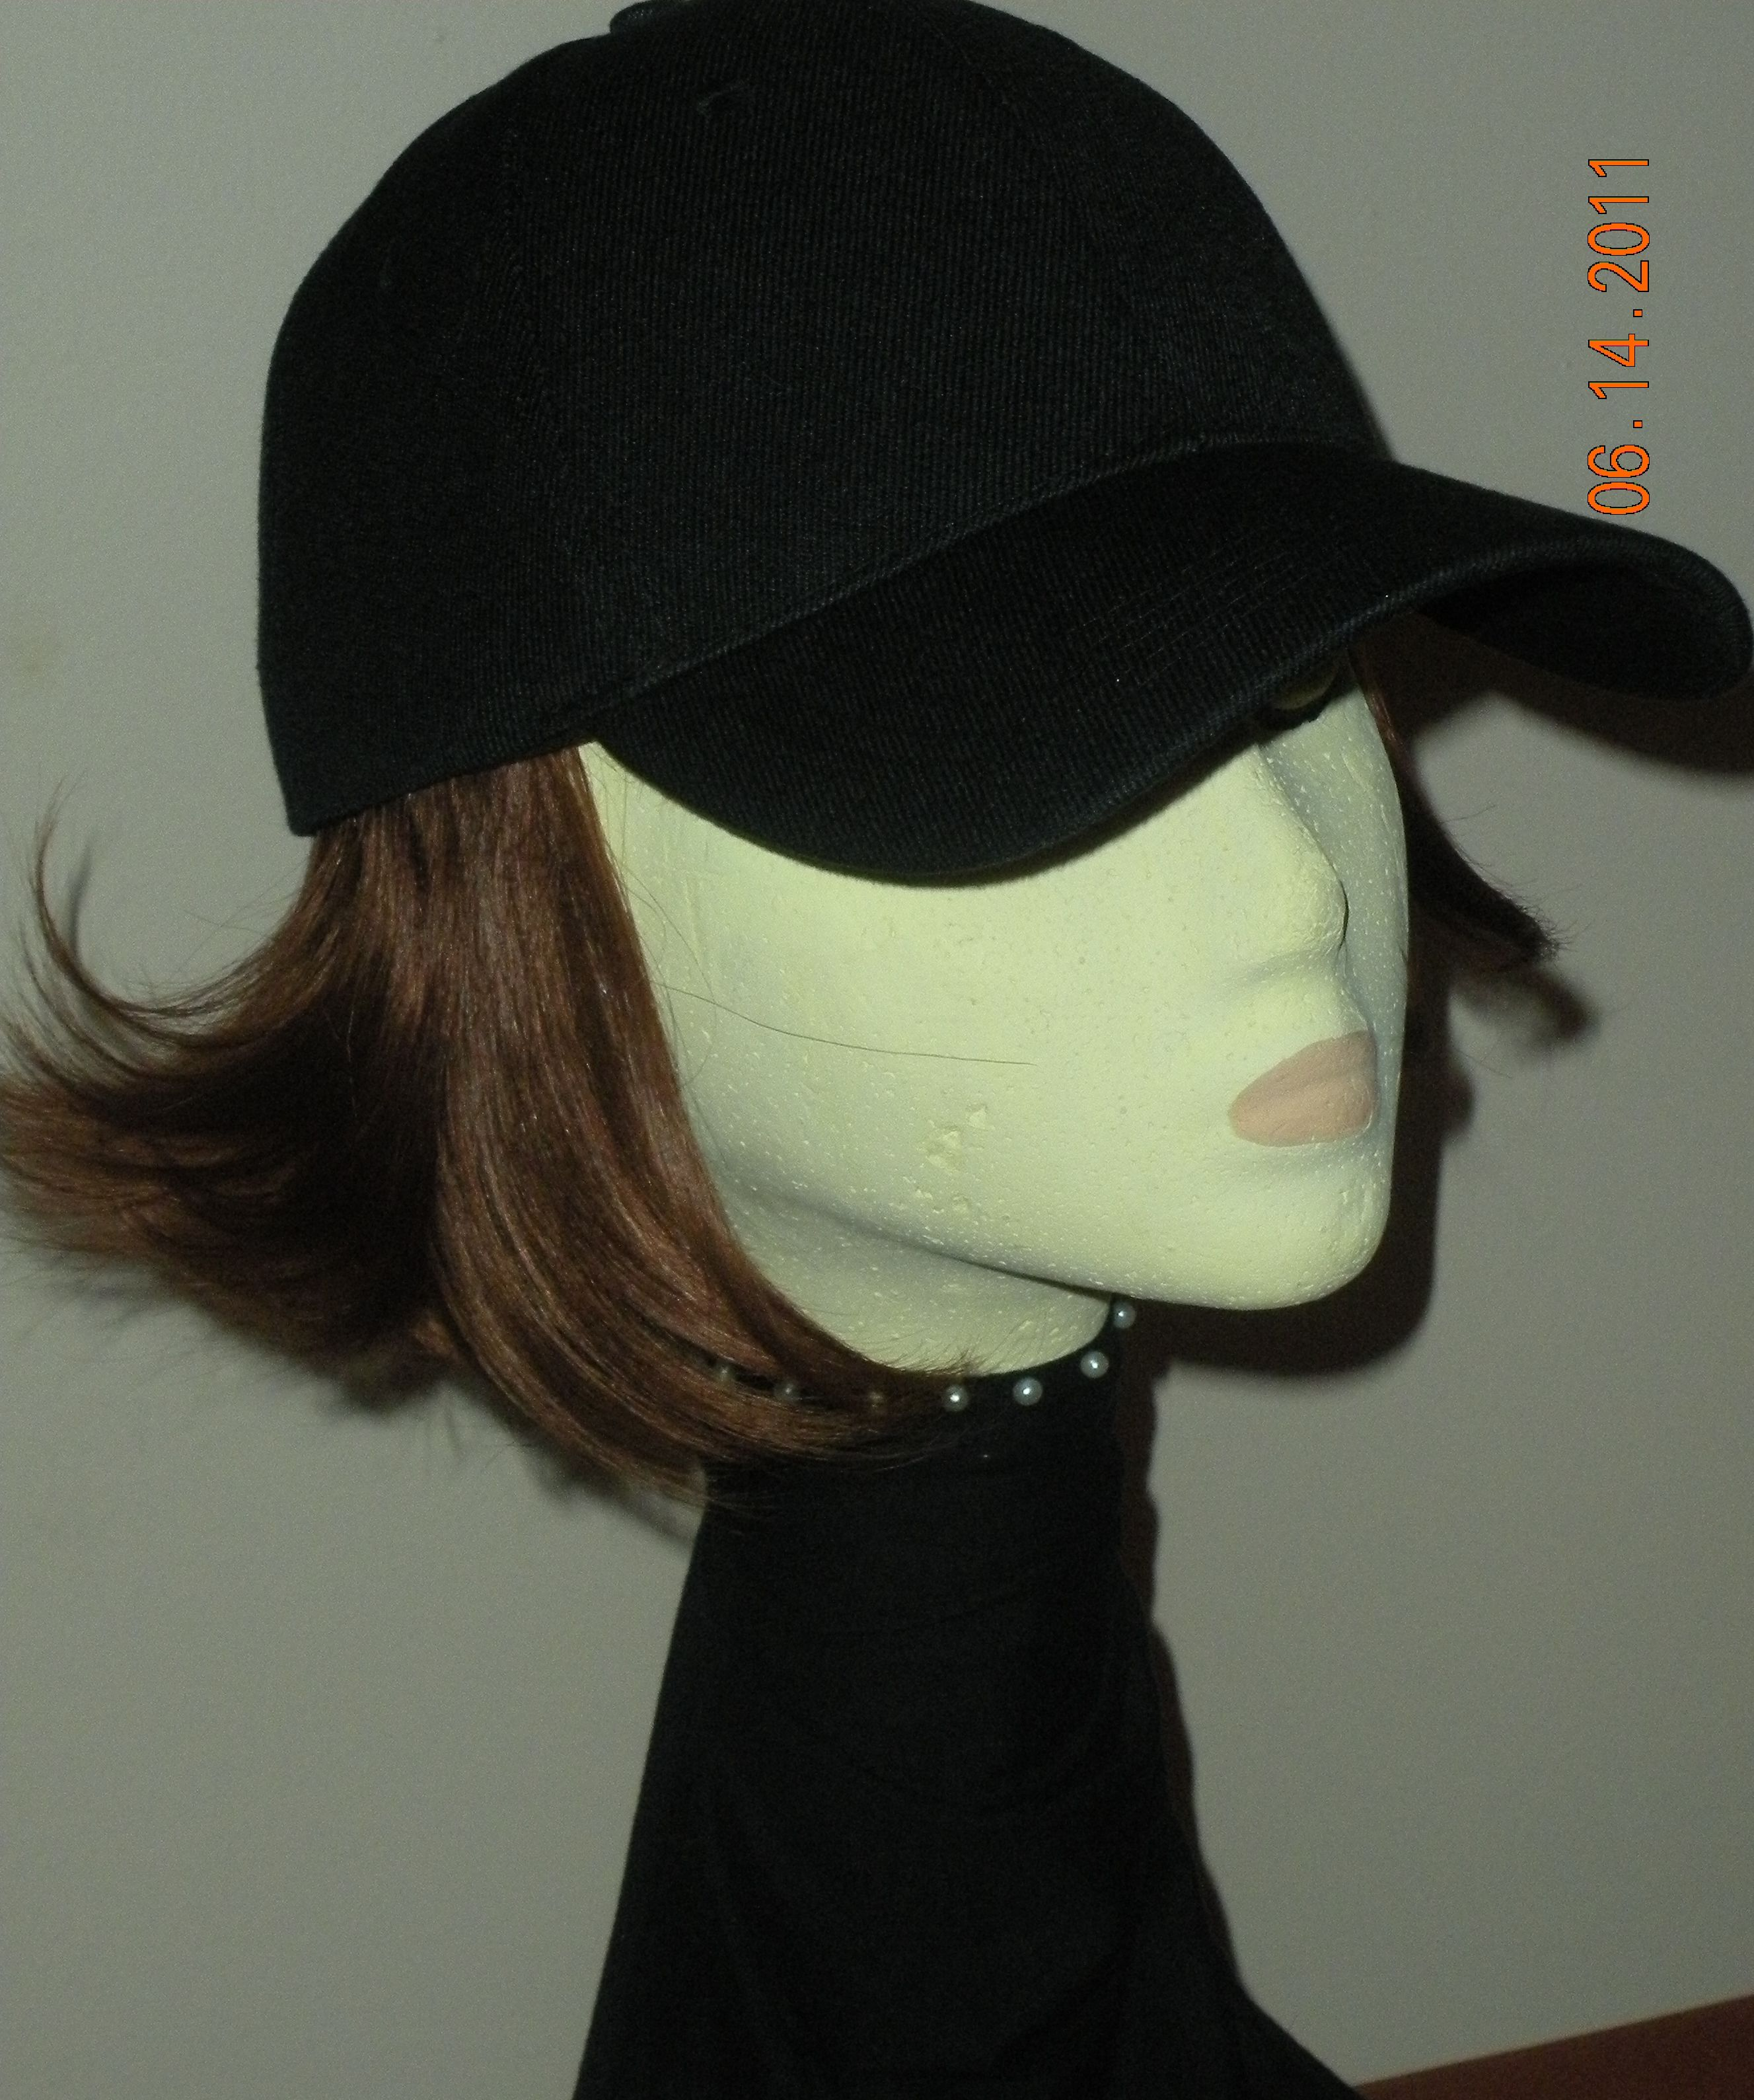 Hats With Hair Attached I Need This For A Rainy Day